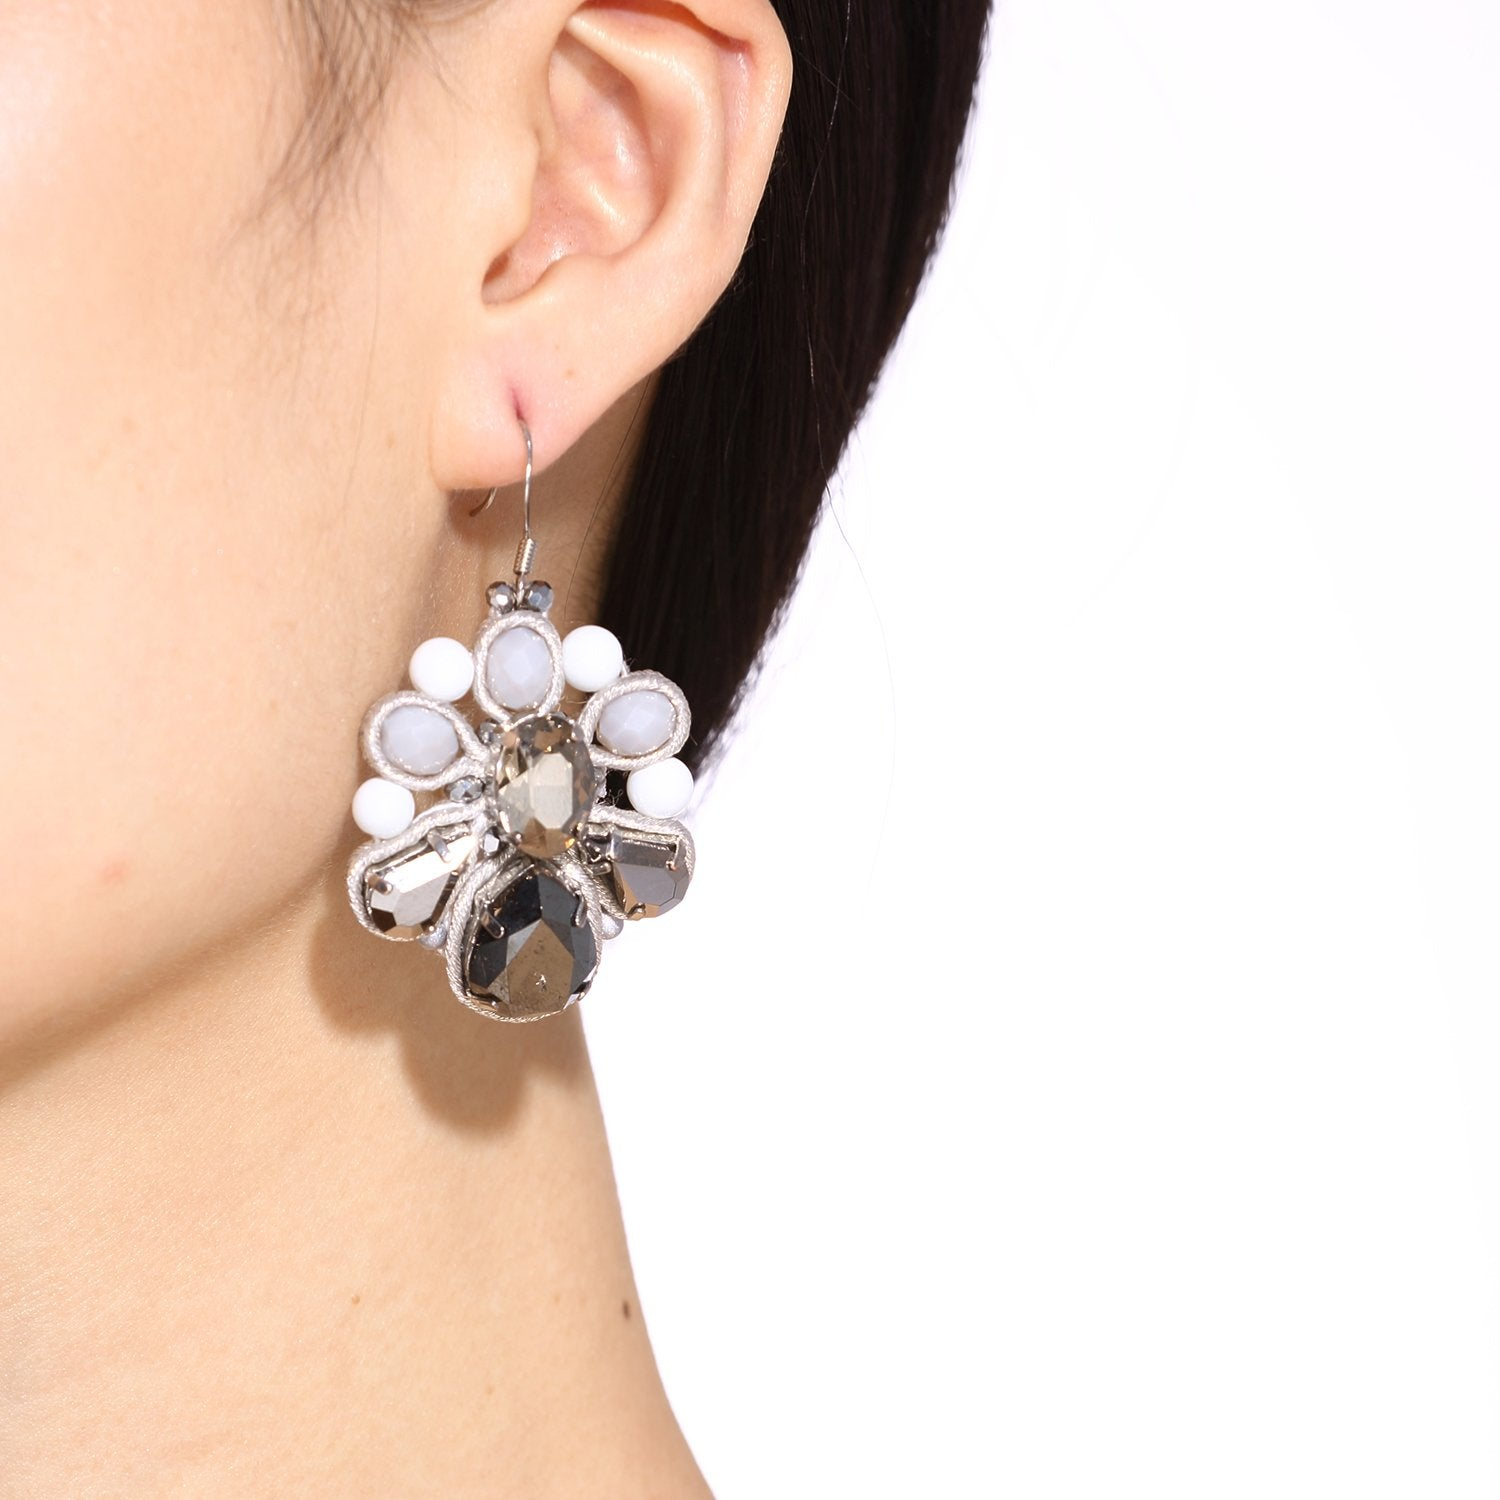 Statement Handmade Earrings Jewelry